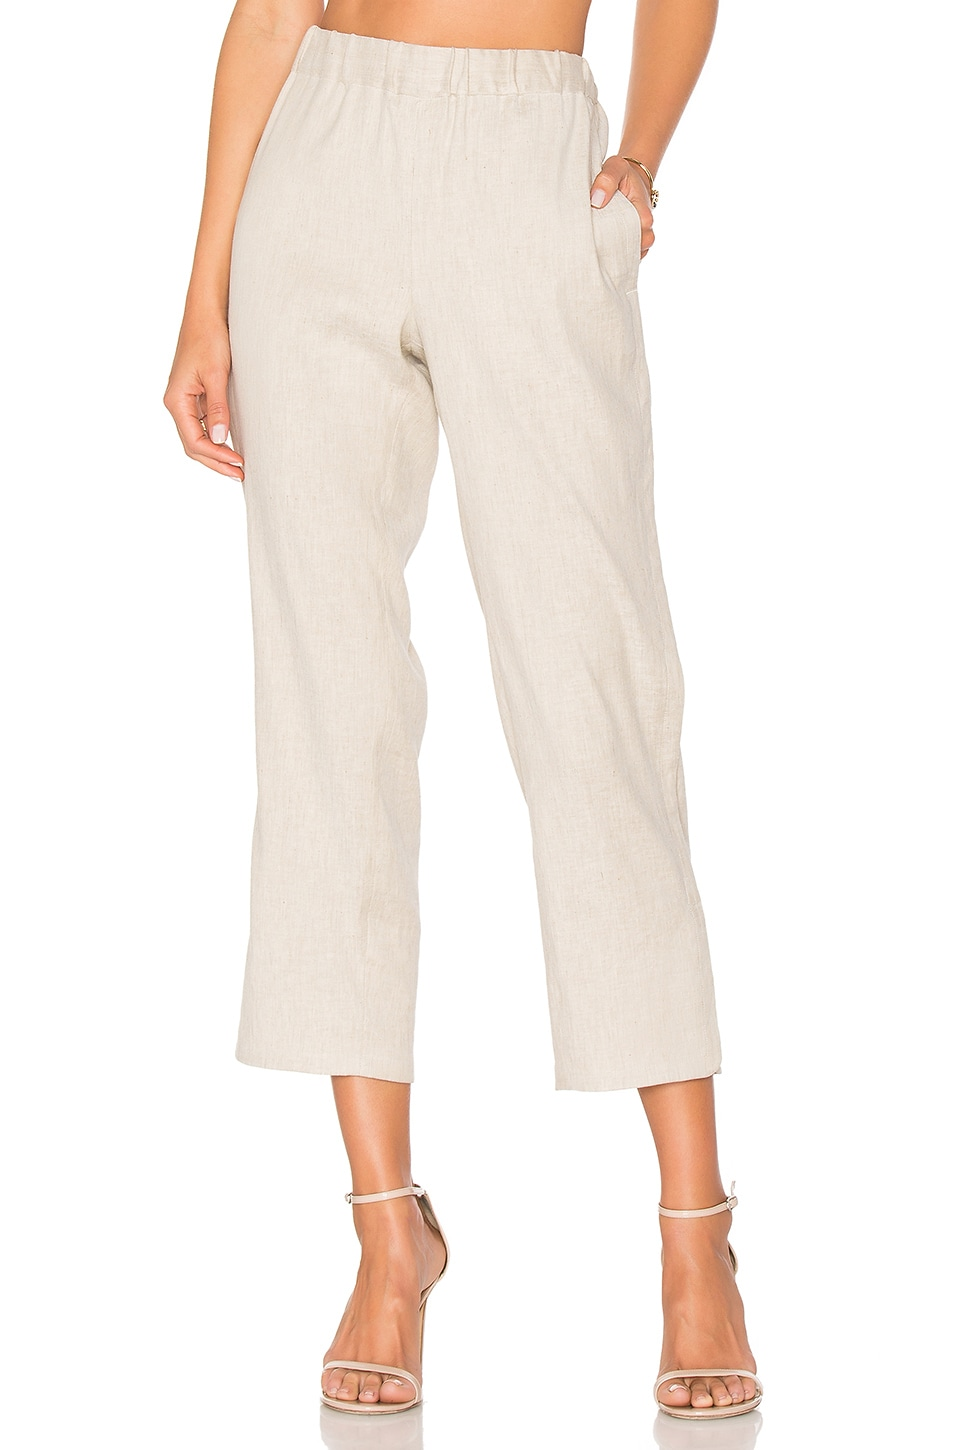 Thorina Pant by Theory